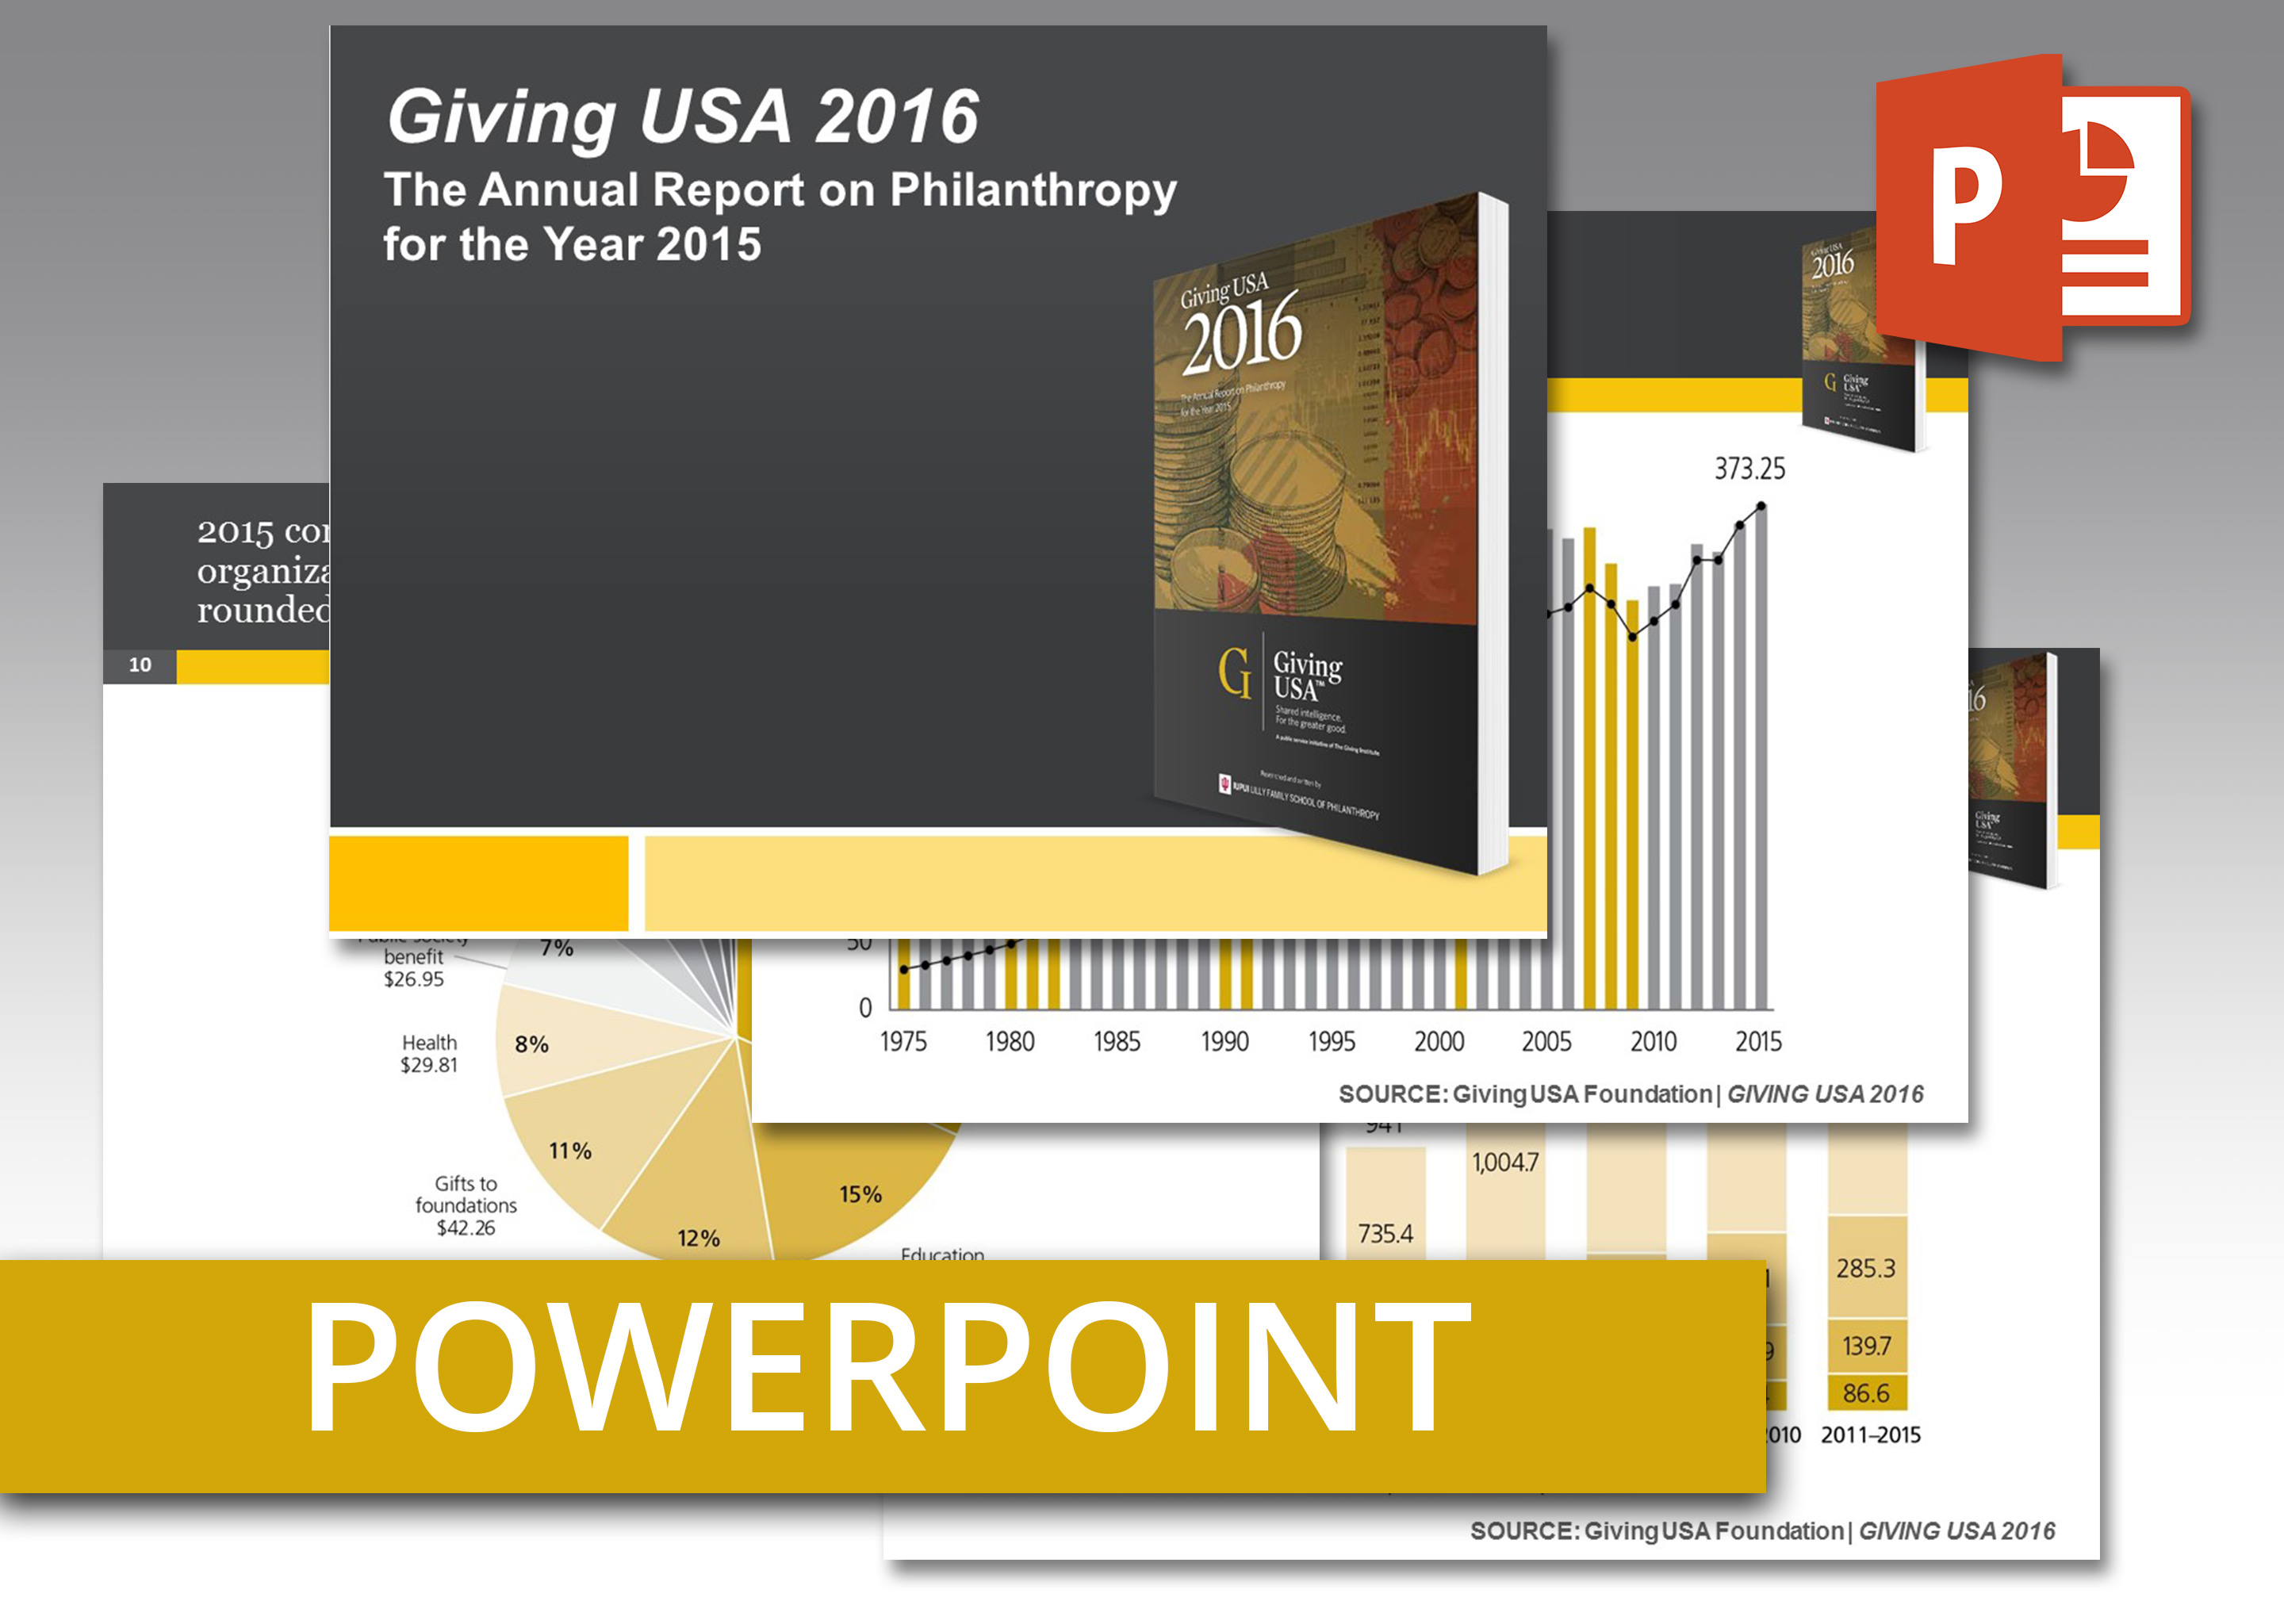 Usdgus  Terrific Giving Usa  Powerpoint An Easytouse Presentation Of Report  With Great Giving Usa  Powerpoint An Easytouse Presentation Of Report Findings Including Talking Points With Beautiful Compare And Contrast Powerpoint Th Grade Also How To Embed Powerpoint Into Word In Addition Powerpoint Reference Slide And Poster Templates For Powerpoint As Well As Powerpoint Smartart Animation Additionally Powerpoint To Video Mac From Givingusaorg With Usdgus  Great Giving Usa  Powerpoint An Easytouse Presentation Of Report  With Beautiful Giving Usa  Powerpoint An Easytouse Presentation Of Report Findings Including Talking Points And Terrific Compare And Contrast Powerpoint Th Grade Also How To Embed Powerpoint Into Word In Addition Powerpoint Reference Slide From Givingusaorg